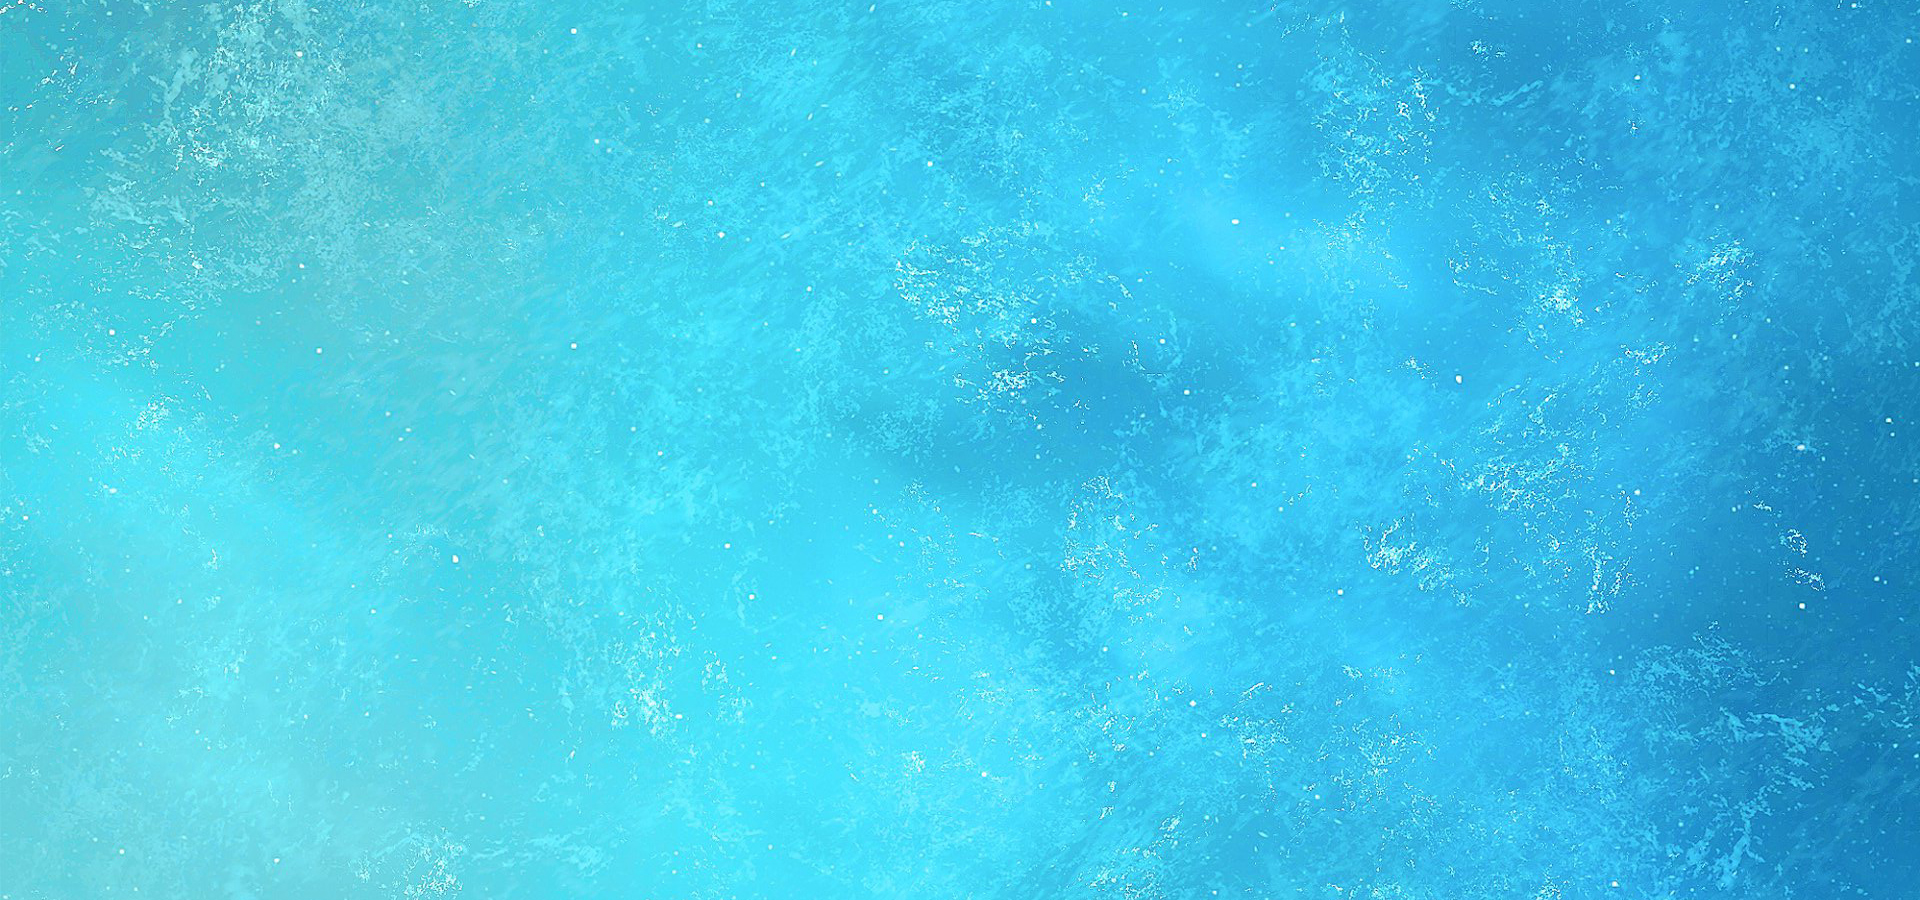 Water Flu Blue Clean Swimming Pool Background Image For